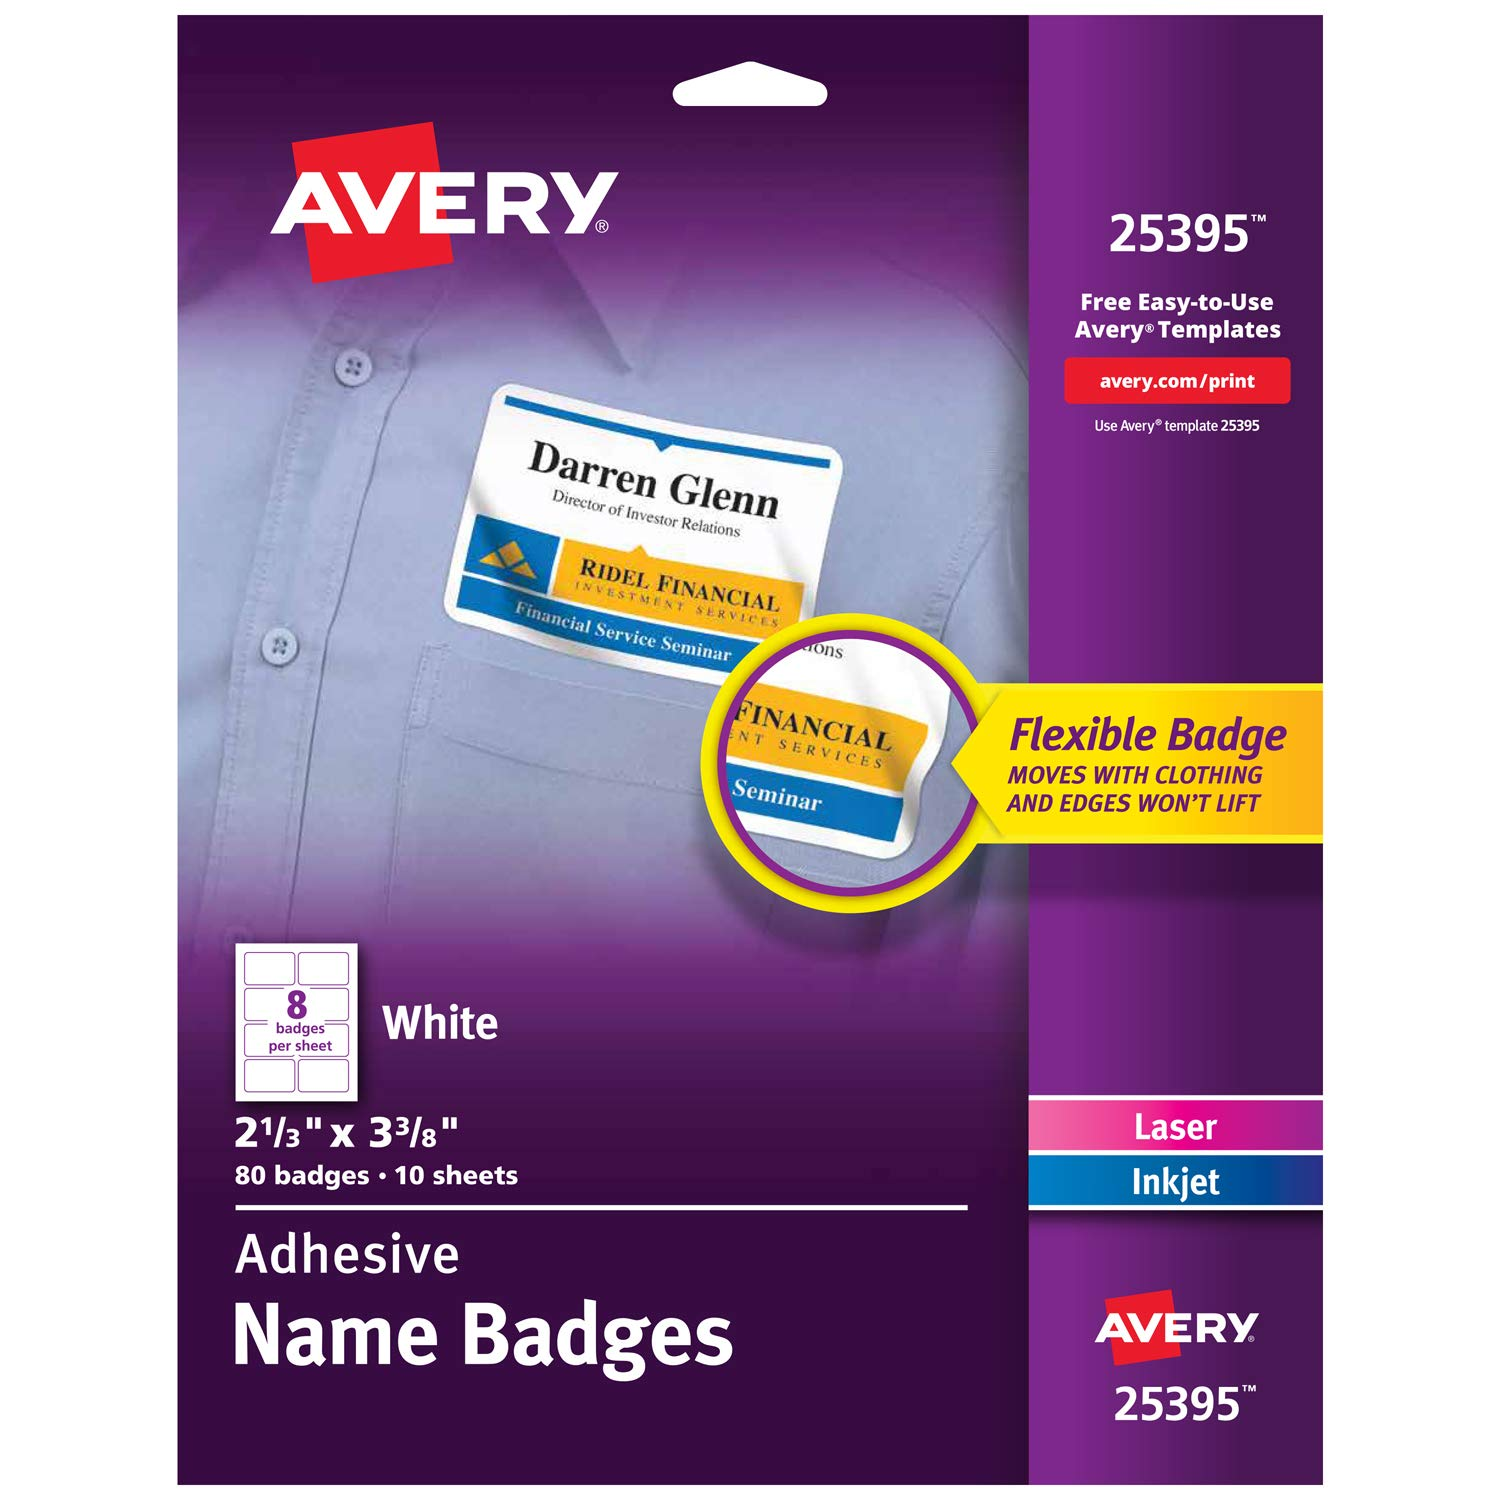 Avery Self-Adhesive Name Badges, 2.33 x 3.375 Inch, White, Pack of 80 (25395)